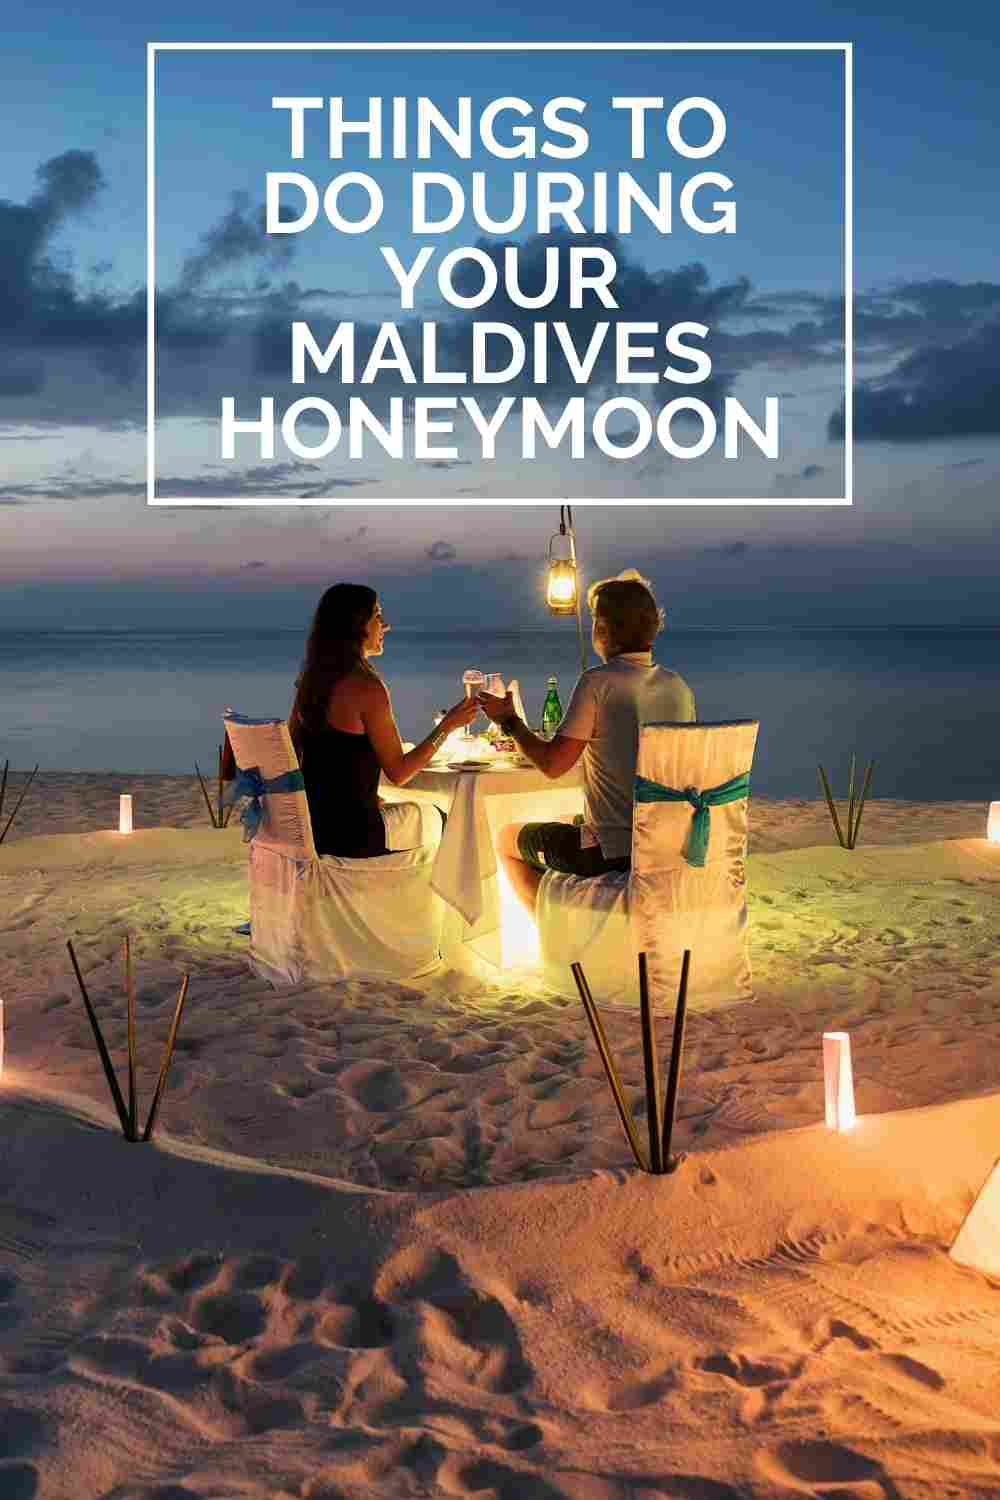 Things to do during your Maldives Honeymoon